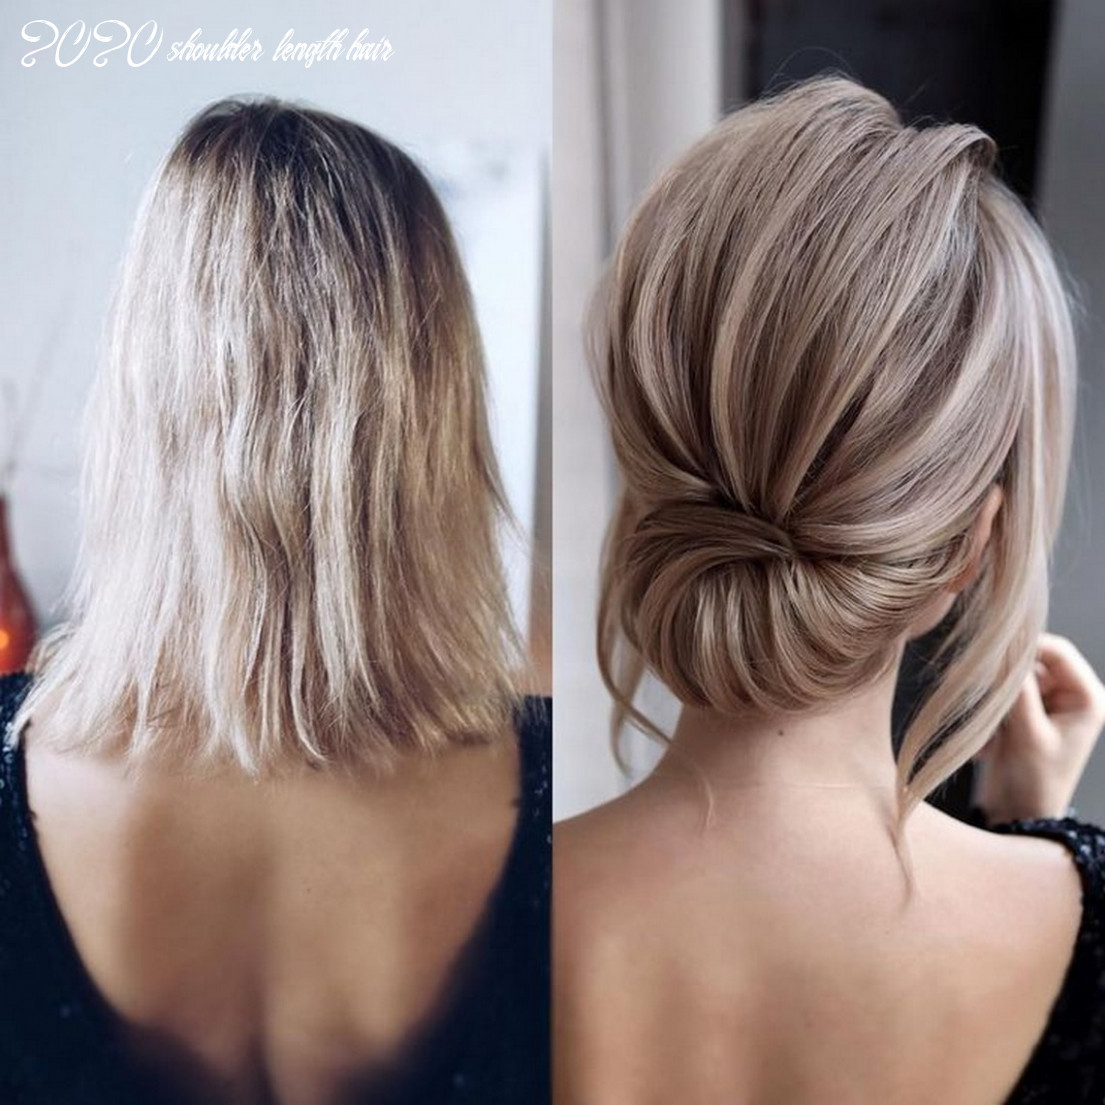 11 medium length wedding hairstyles for 11 brides inspira 2020 shoulder length hair